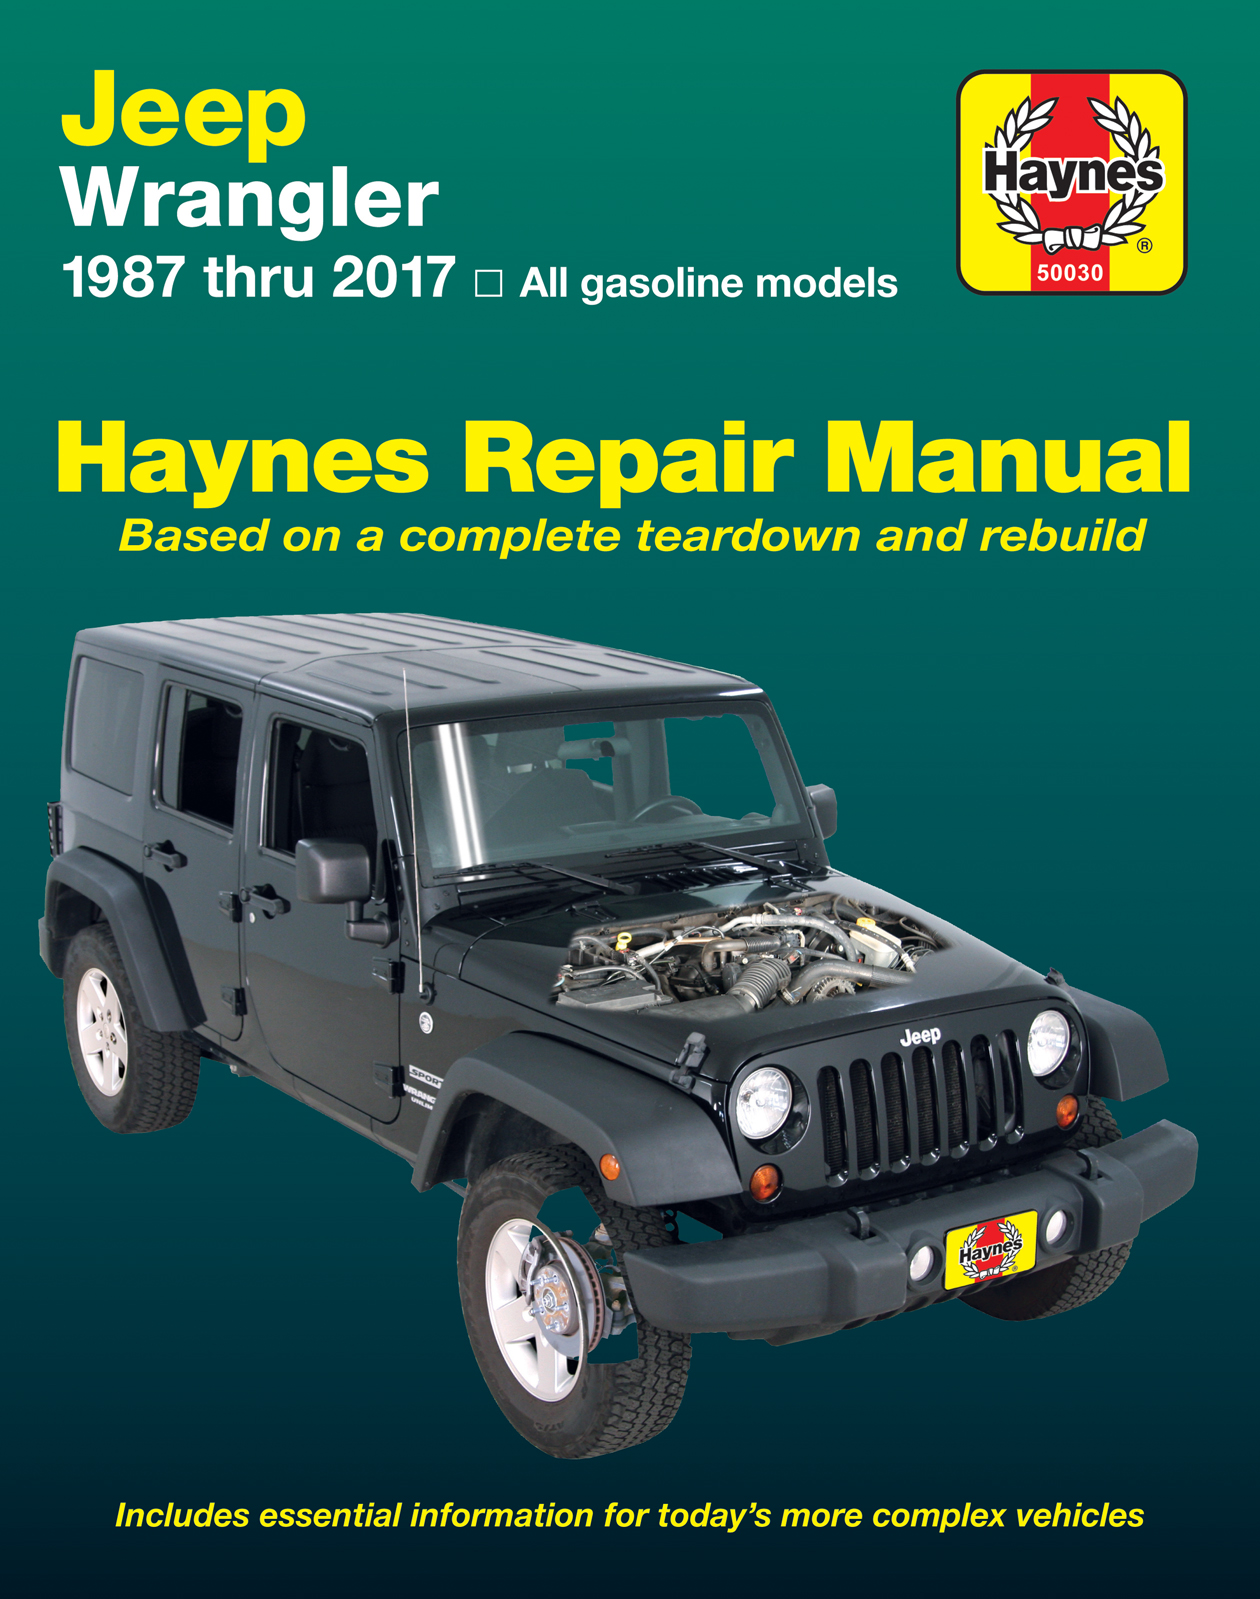 2001 jeep wrangler sahara owners manual download